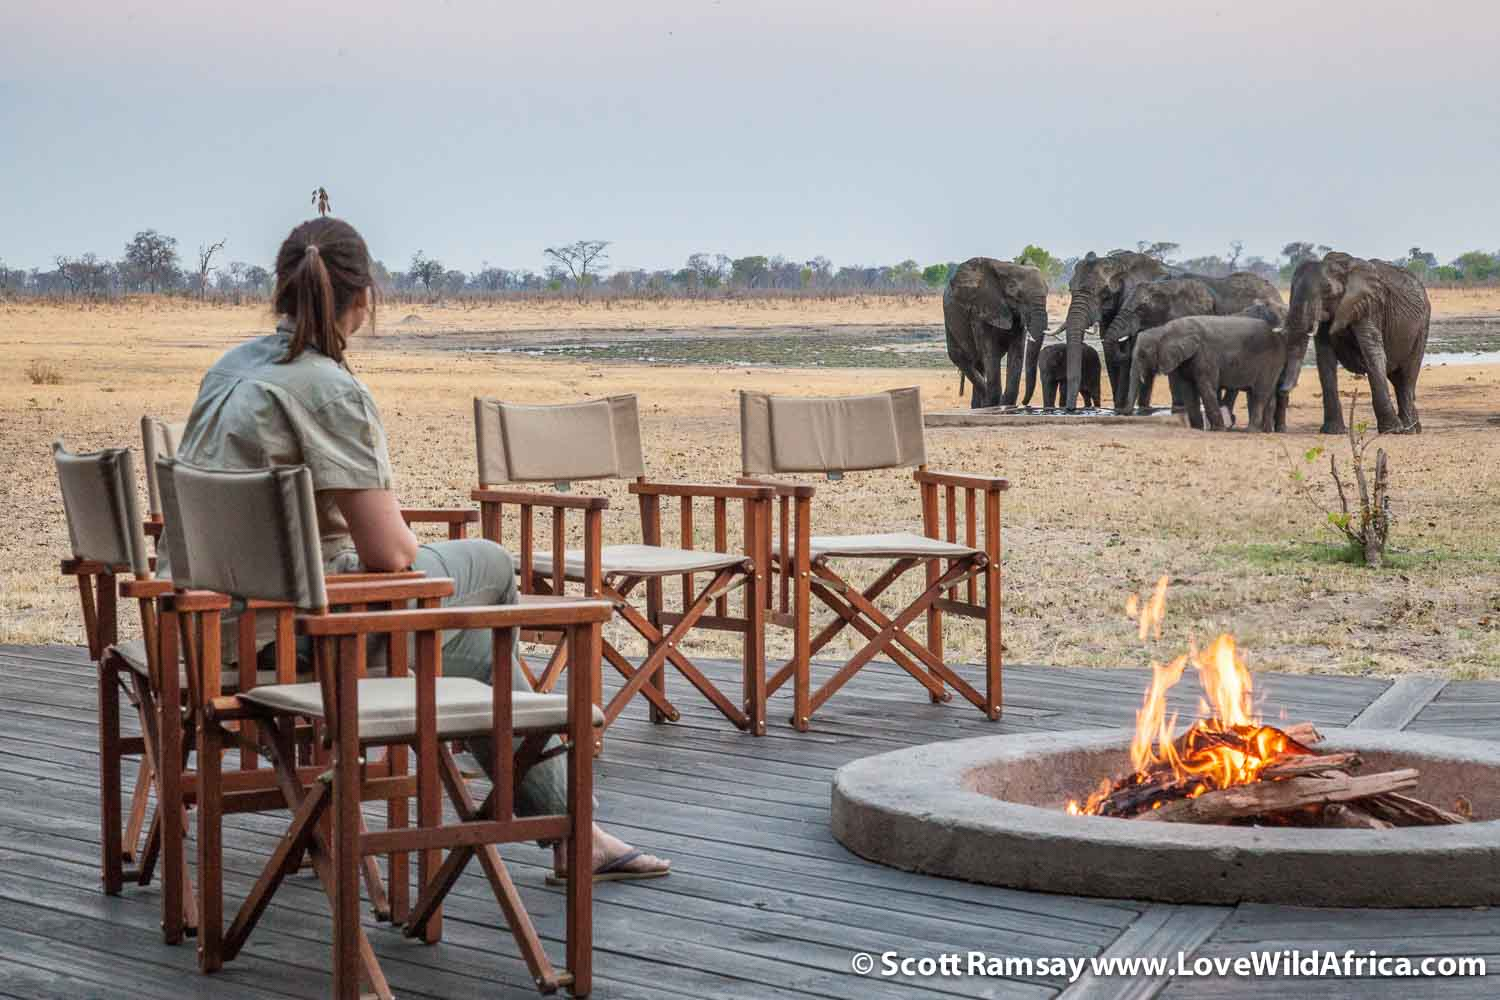 Davison's Camp in the WIlderness Safaris concession in Hwange is more low-key, and not as luxurious, but to me, it's more in keeping with the wilderness experience. Manageress Kimi White watches some elephants drink from the camp's pan.